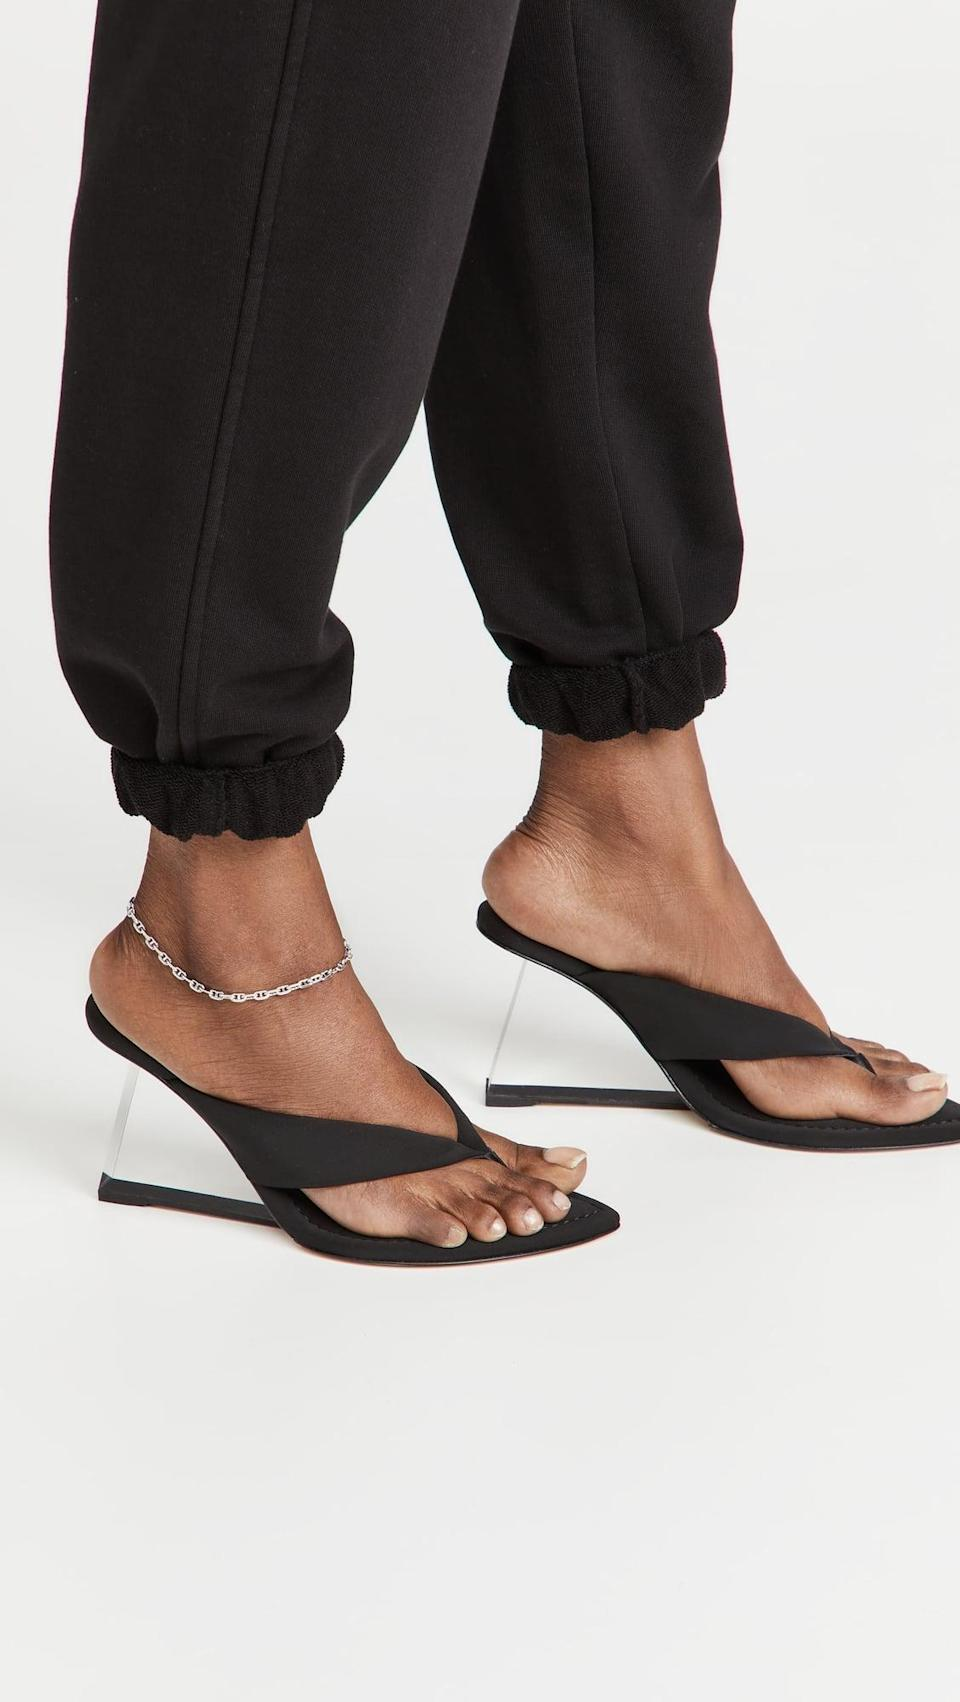 <p>These <span>Good American Clear Block Heel Thong Sandals</span> ($195) won't sink into grass, which is the goal. They are cool looking and will make you feel like you can take on anything.</p>